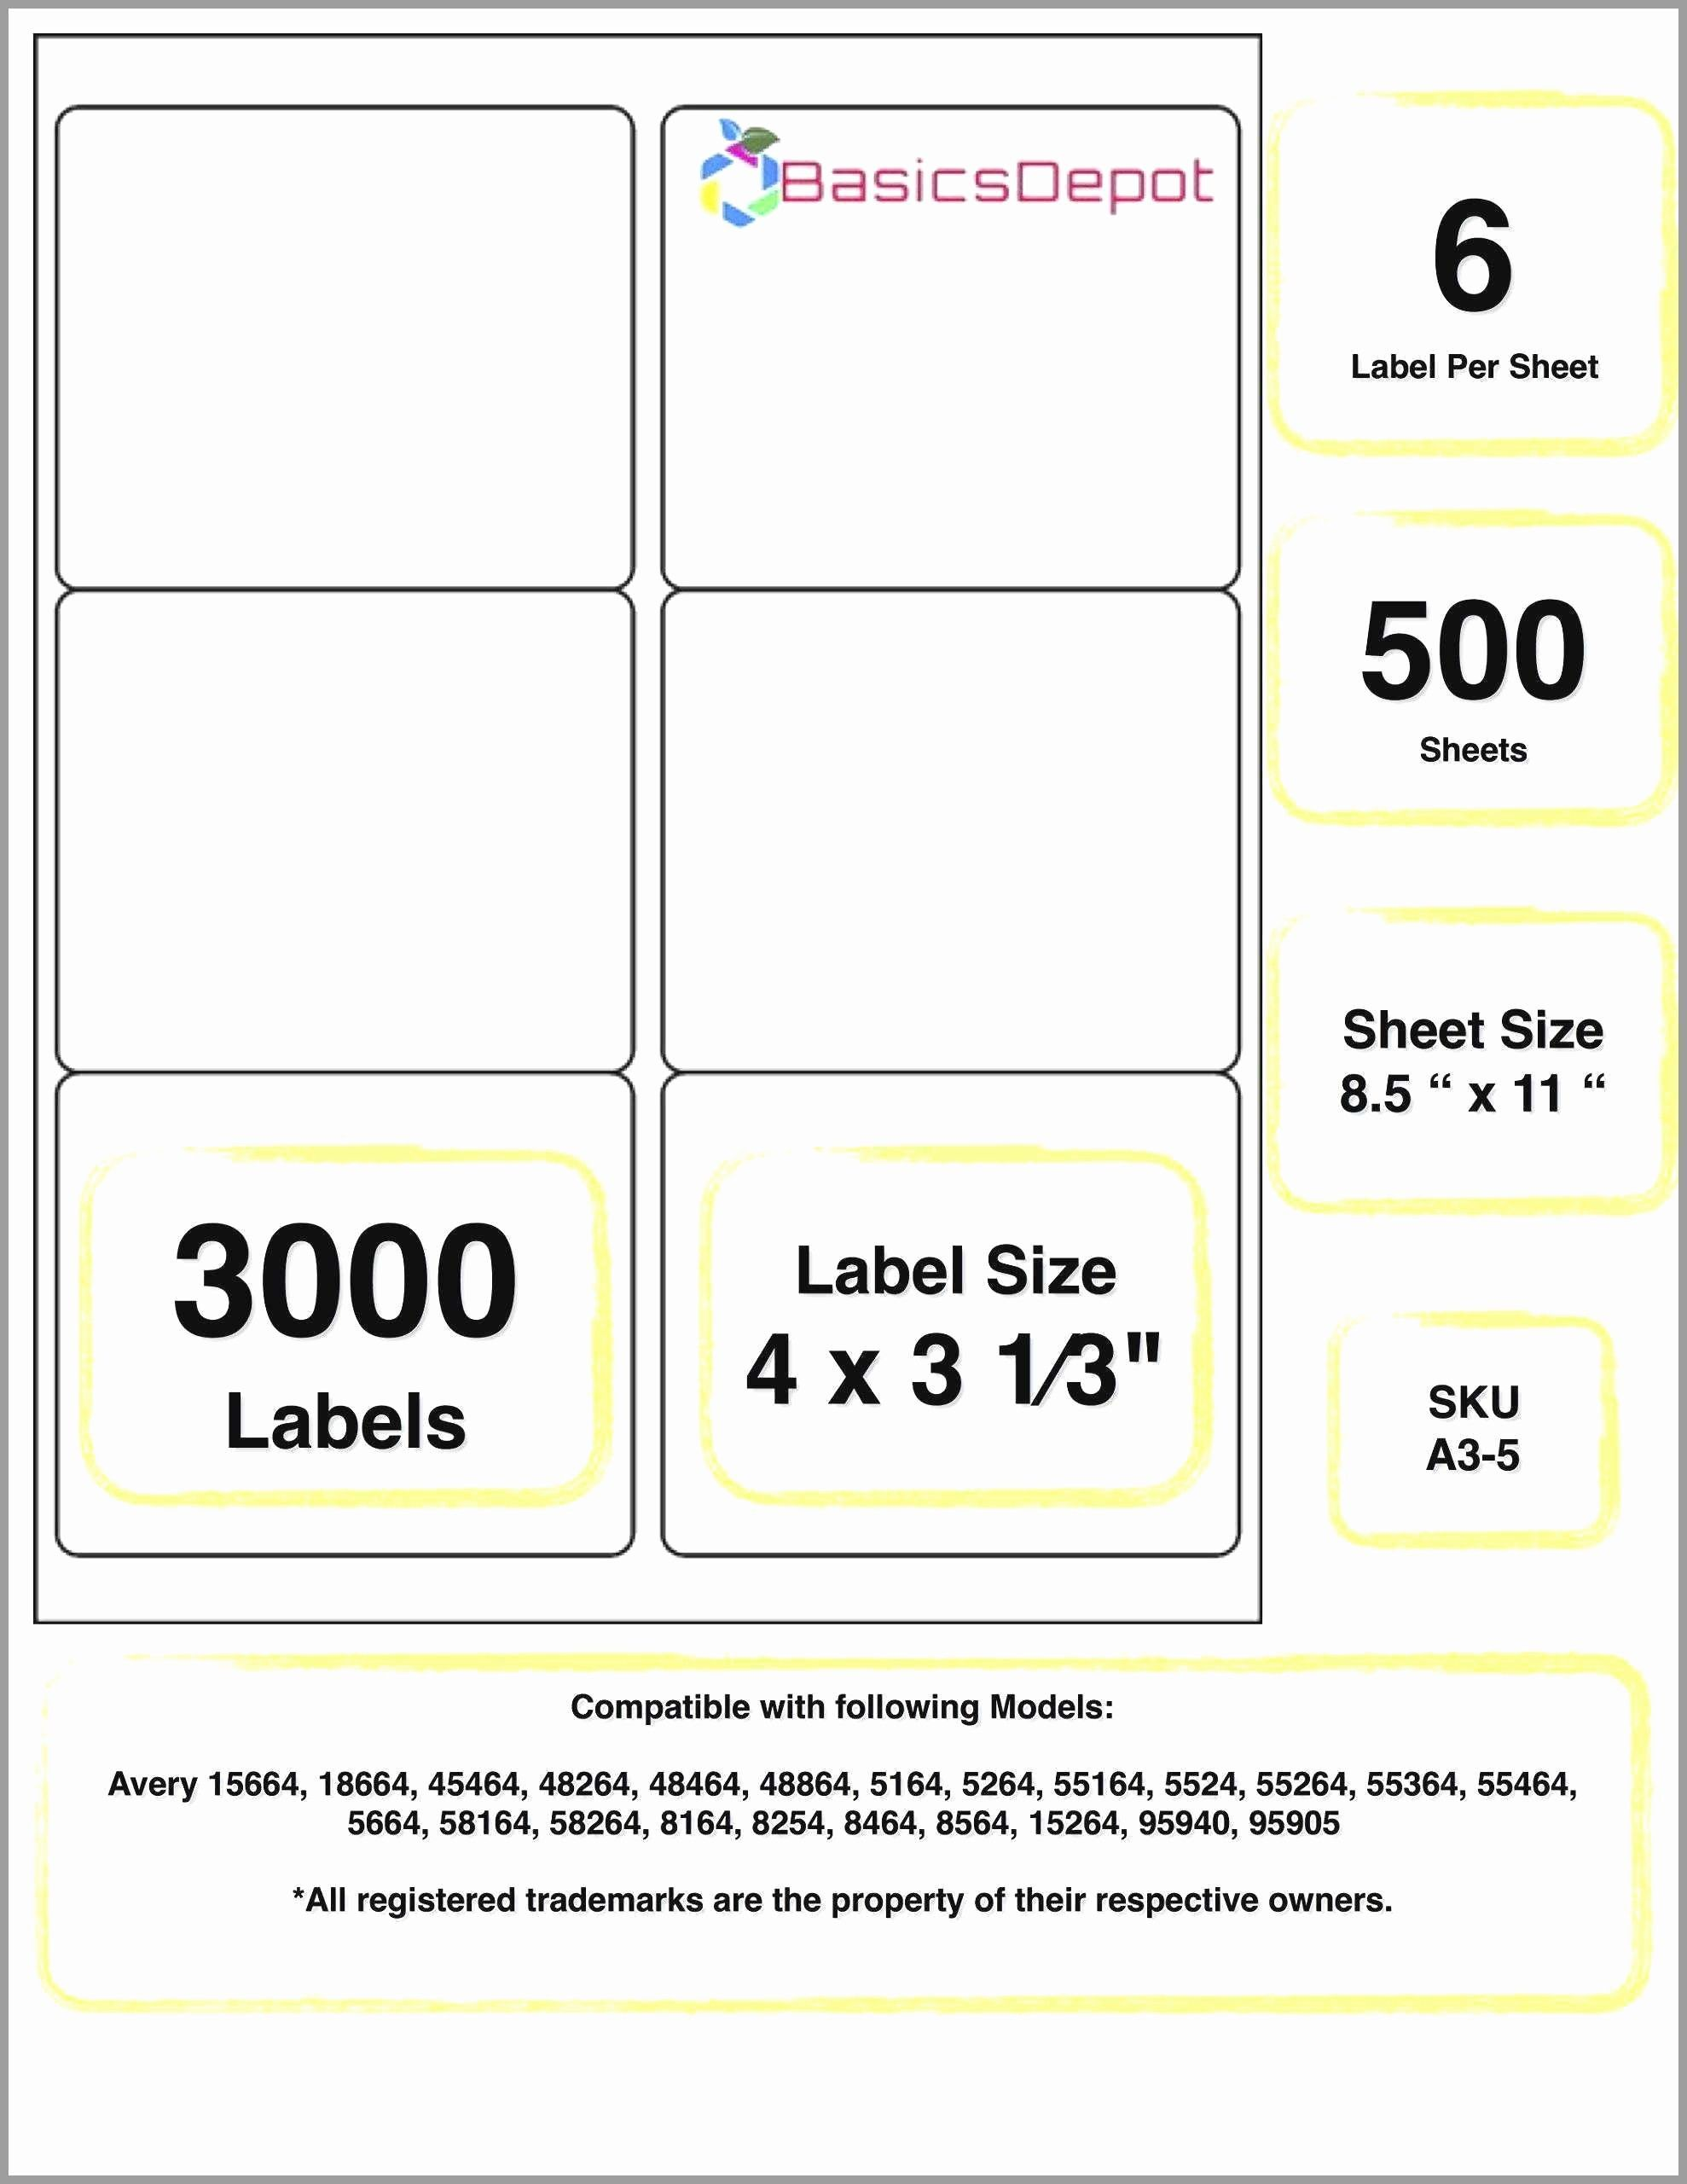 Avery 5164 Shipping Label Template Elegant Avery 6873 Template Lovely 96 Template For Avery 516 In 2020 Lip Balm Labels Template Label Templates Address Label Template